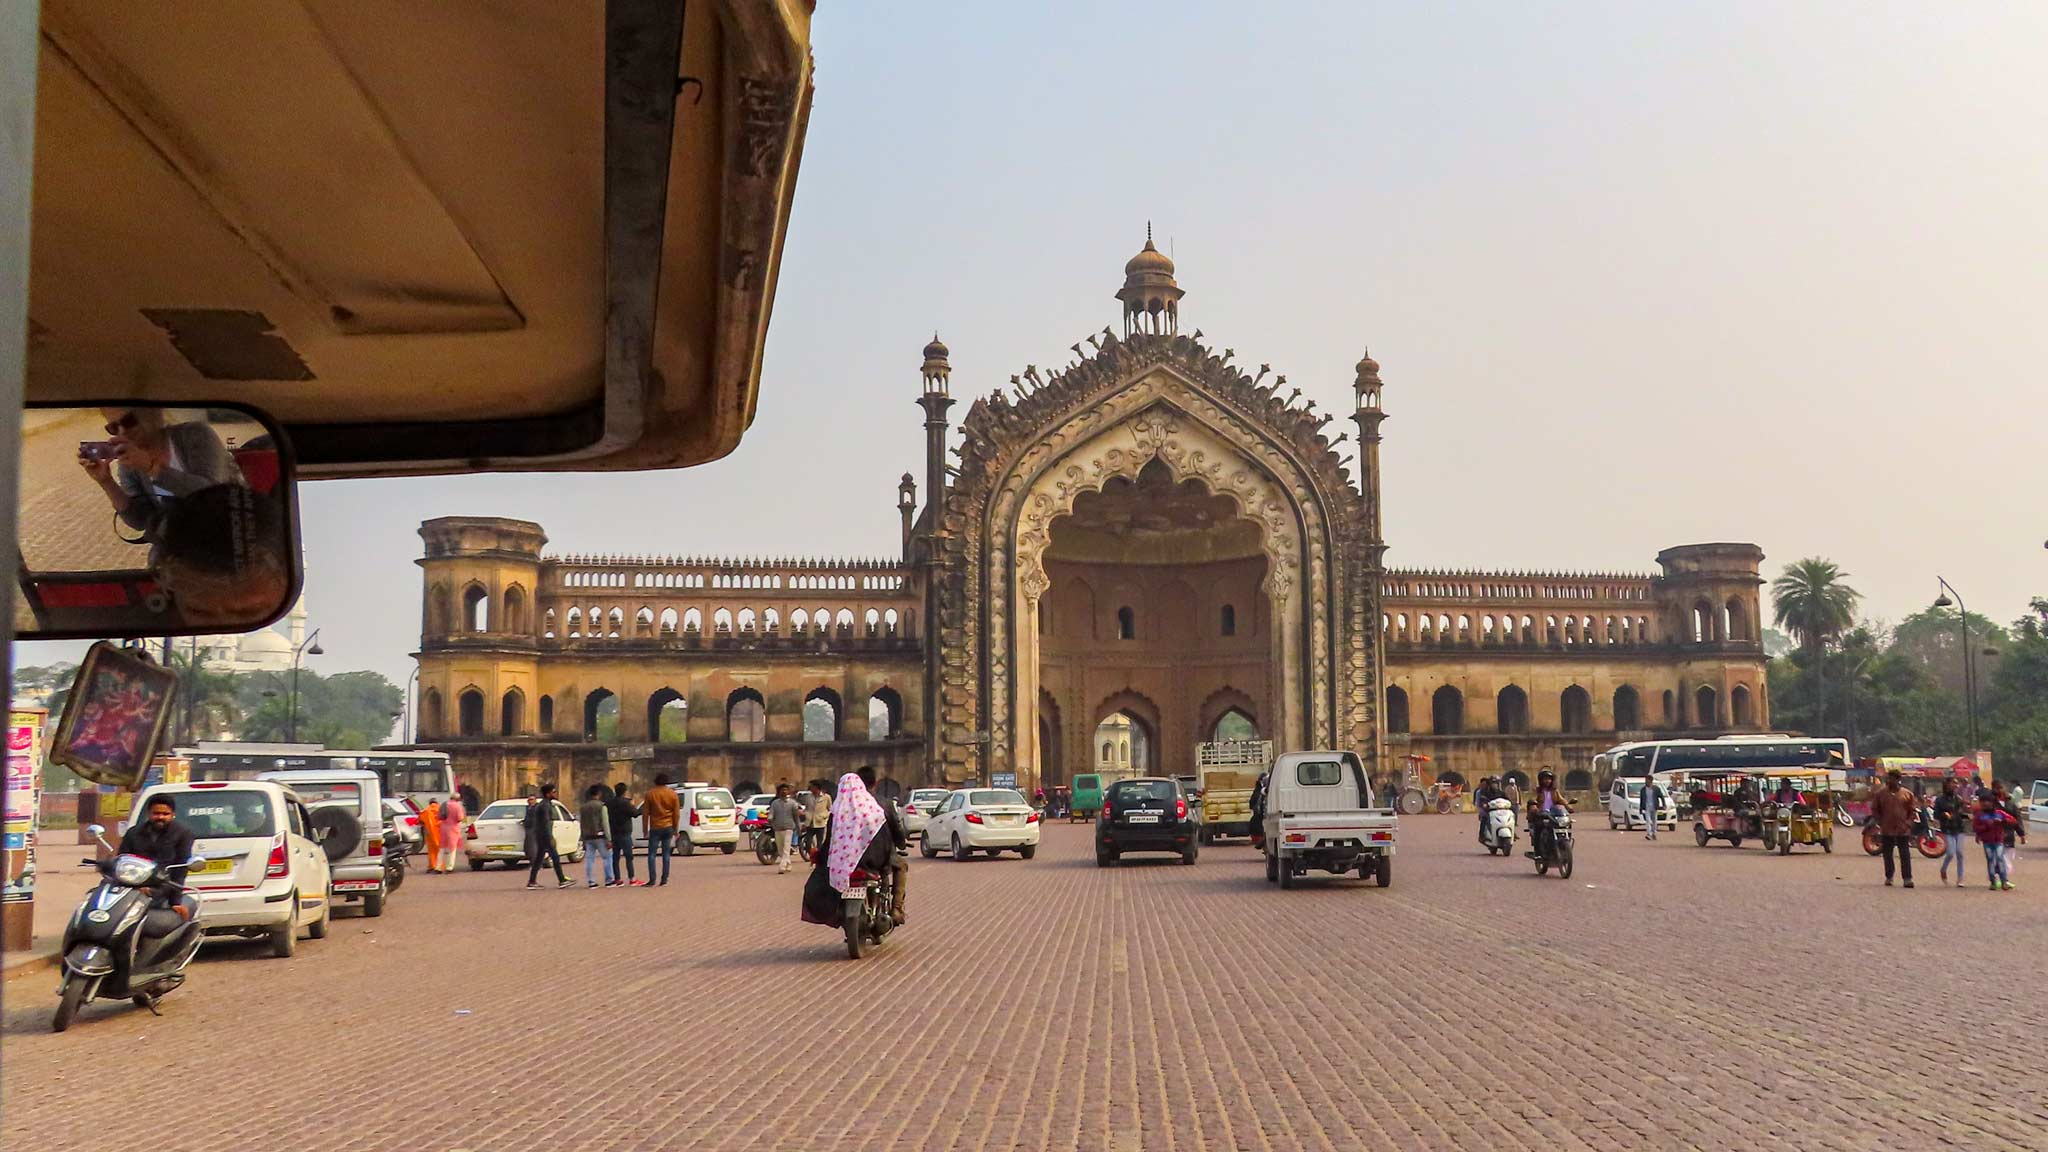 The Rumi Darwaza Gate, a large gate to the city on the road, as seen from an auto rickshaw